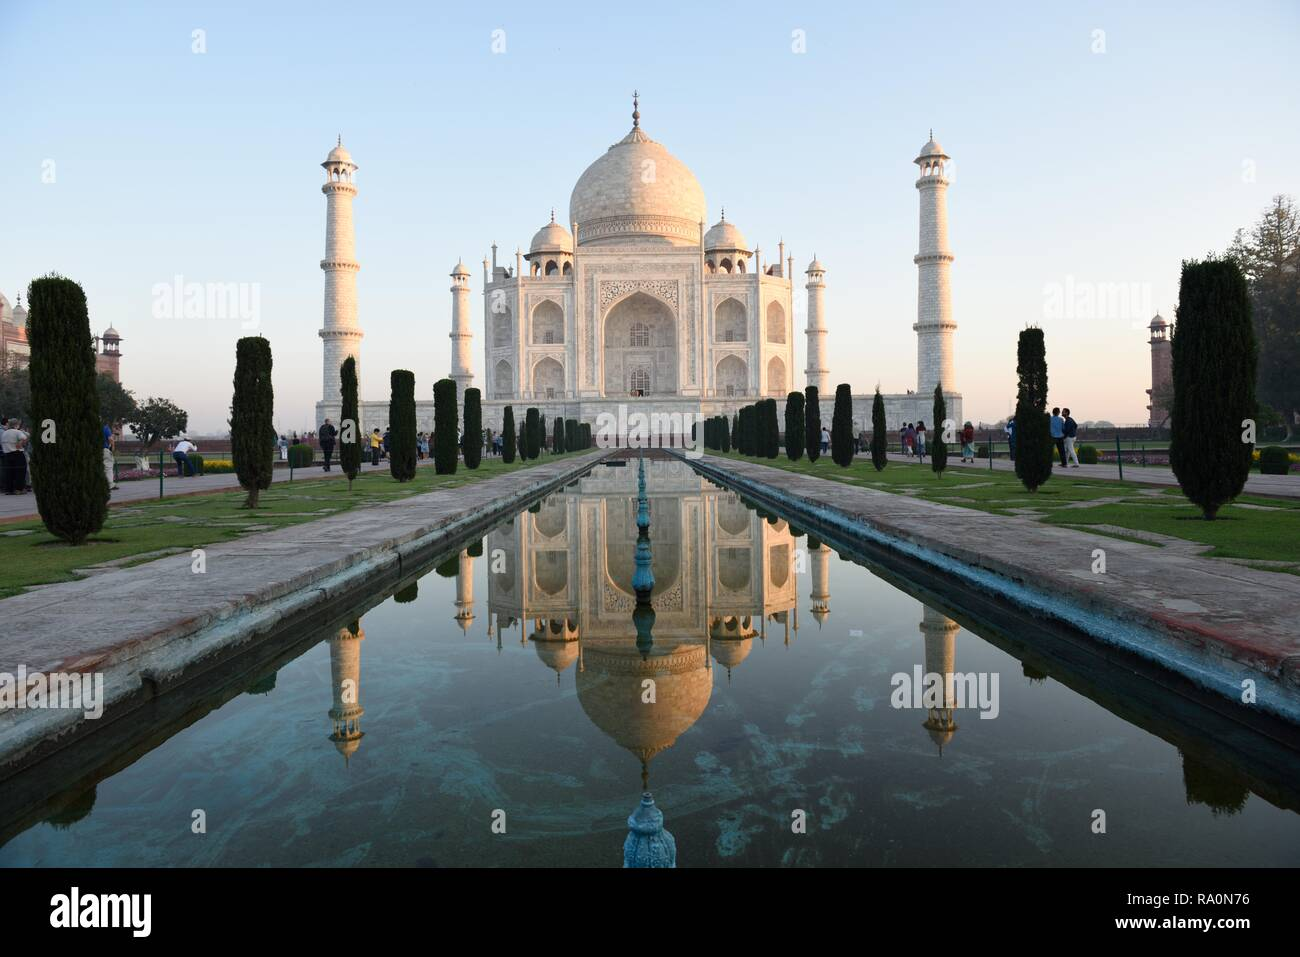 White makrana marble Taj Mahal and water reflections at sunrise in Agra, India. - Stock Image